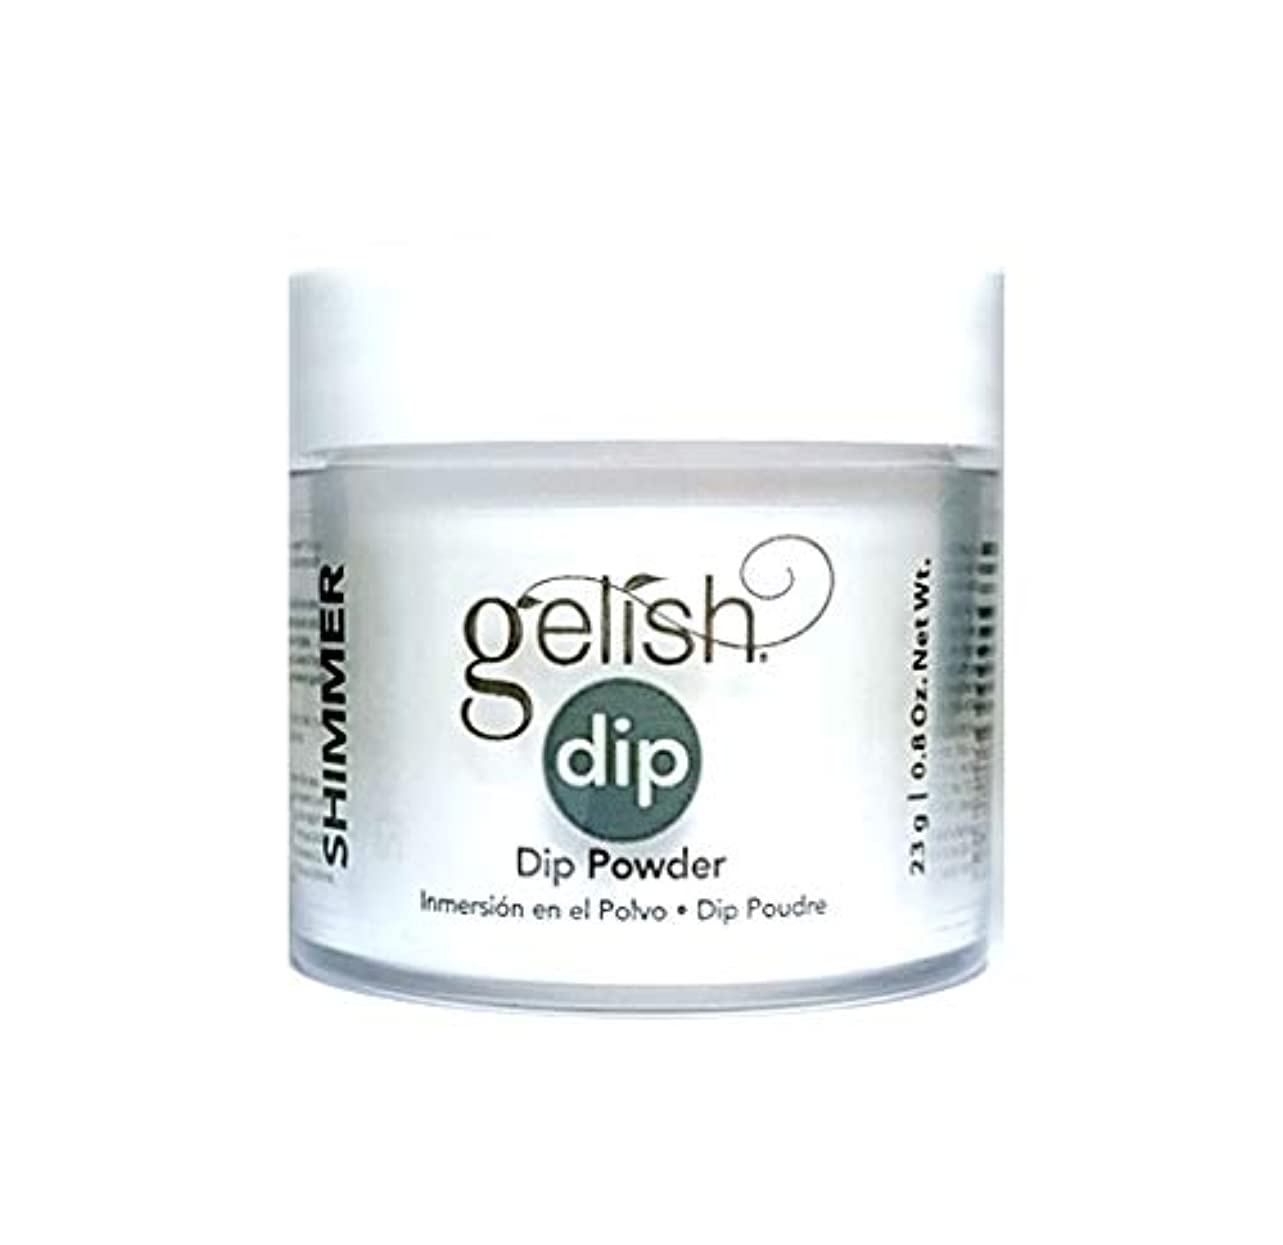 バスルームラインナップ運命Harmony Gelish - Dip Powder - Izzy Wizzy, Let's Get Busy - 23g / 0.8oz